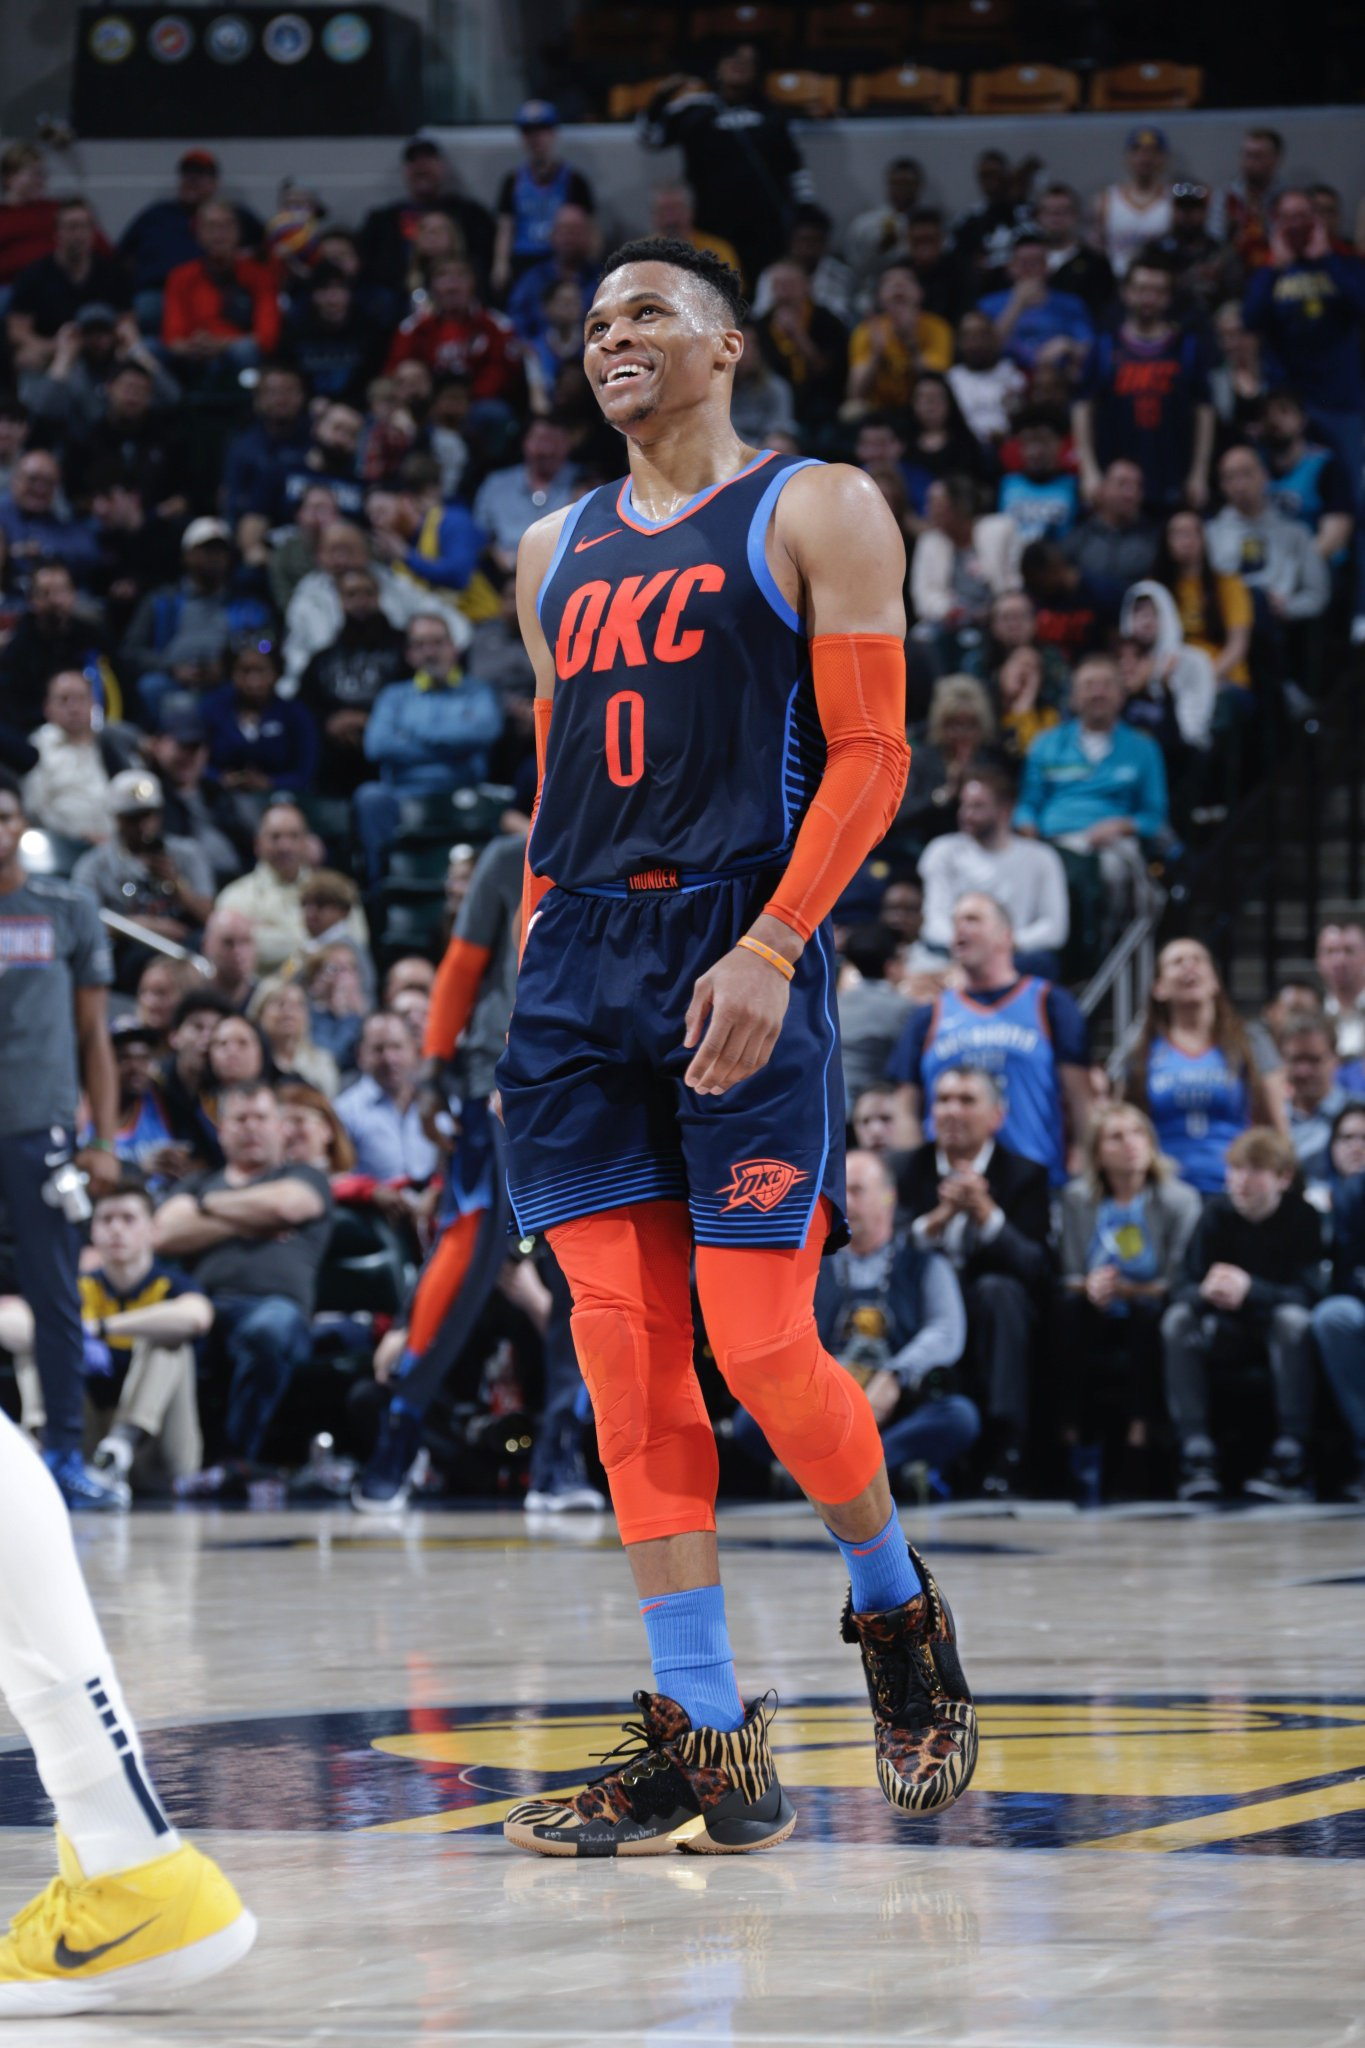 #TripleDoubleWatch for Russ at the break with 8 PTS, 10 REB, 7 AST! #ThunderUp https://t.co/3KZZIFXfYx